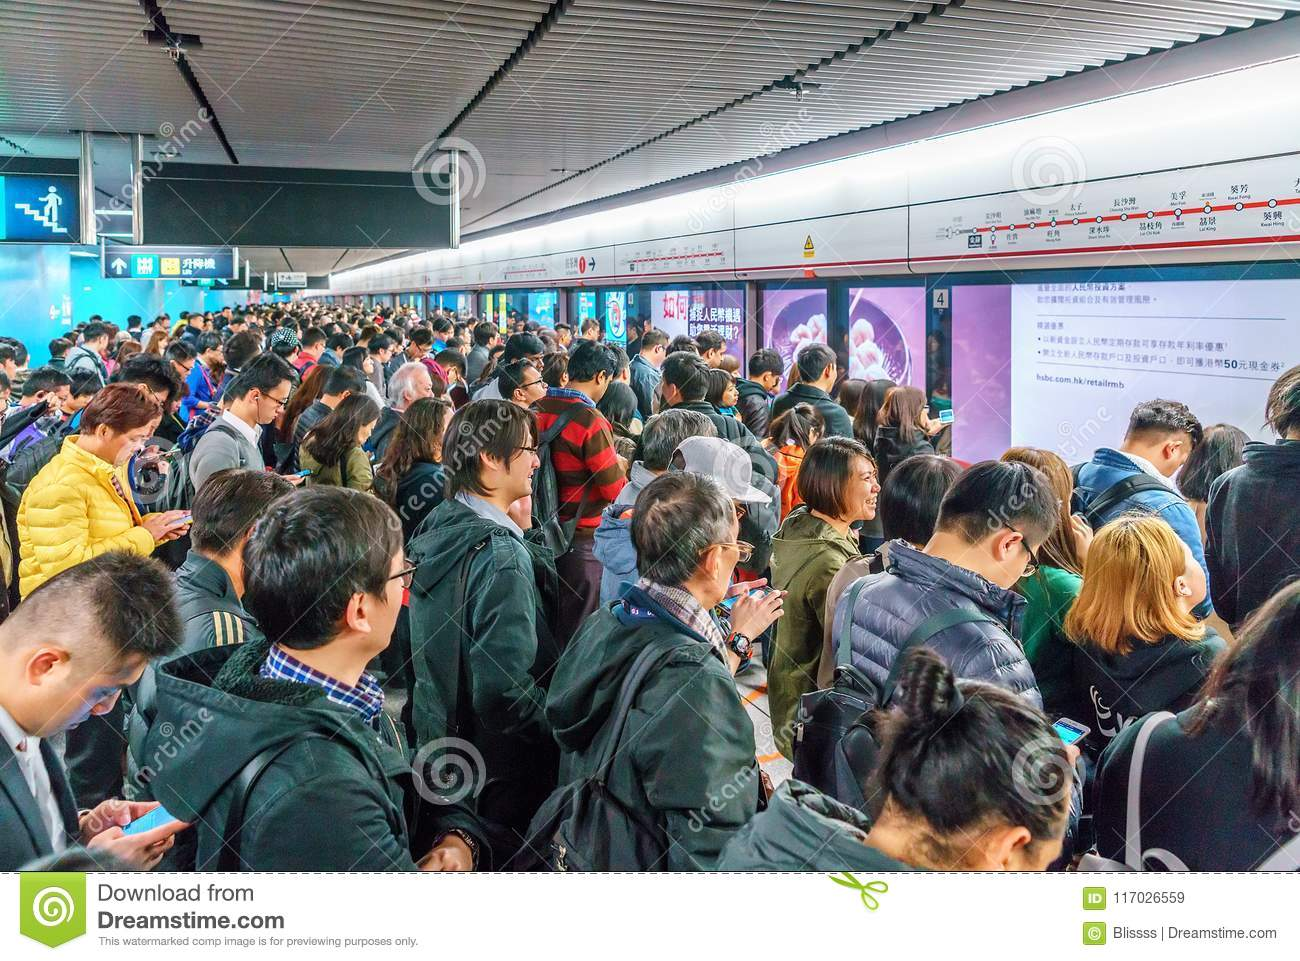 Lots of busy Chinese people crowding at subway station in Central District of Hong Kong waiting for a train to arrive